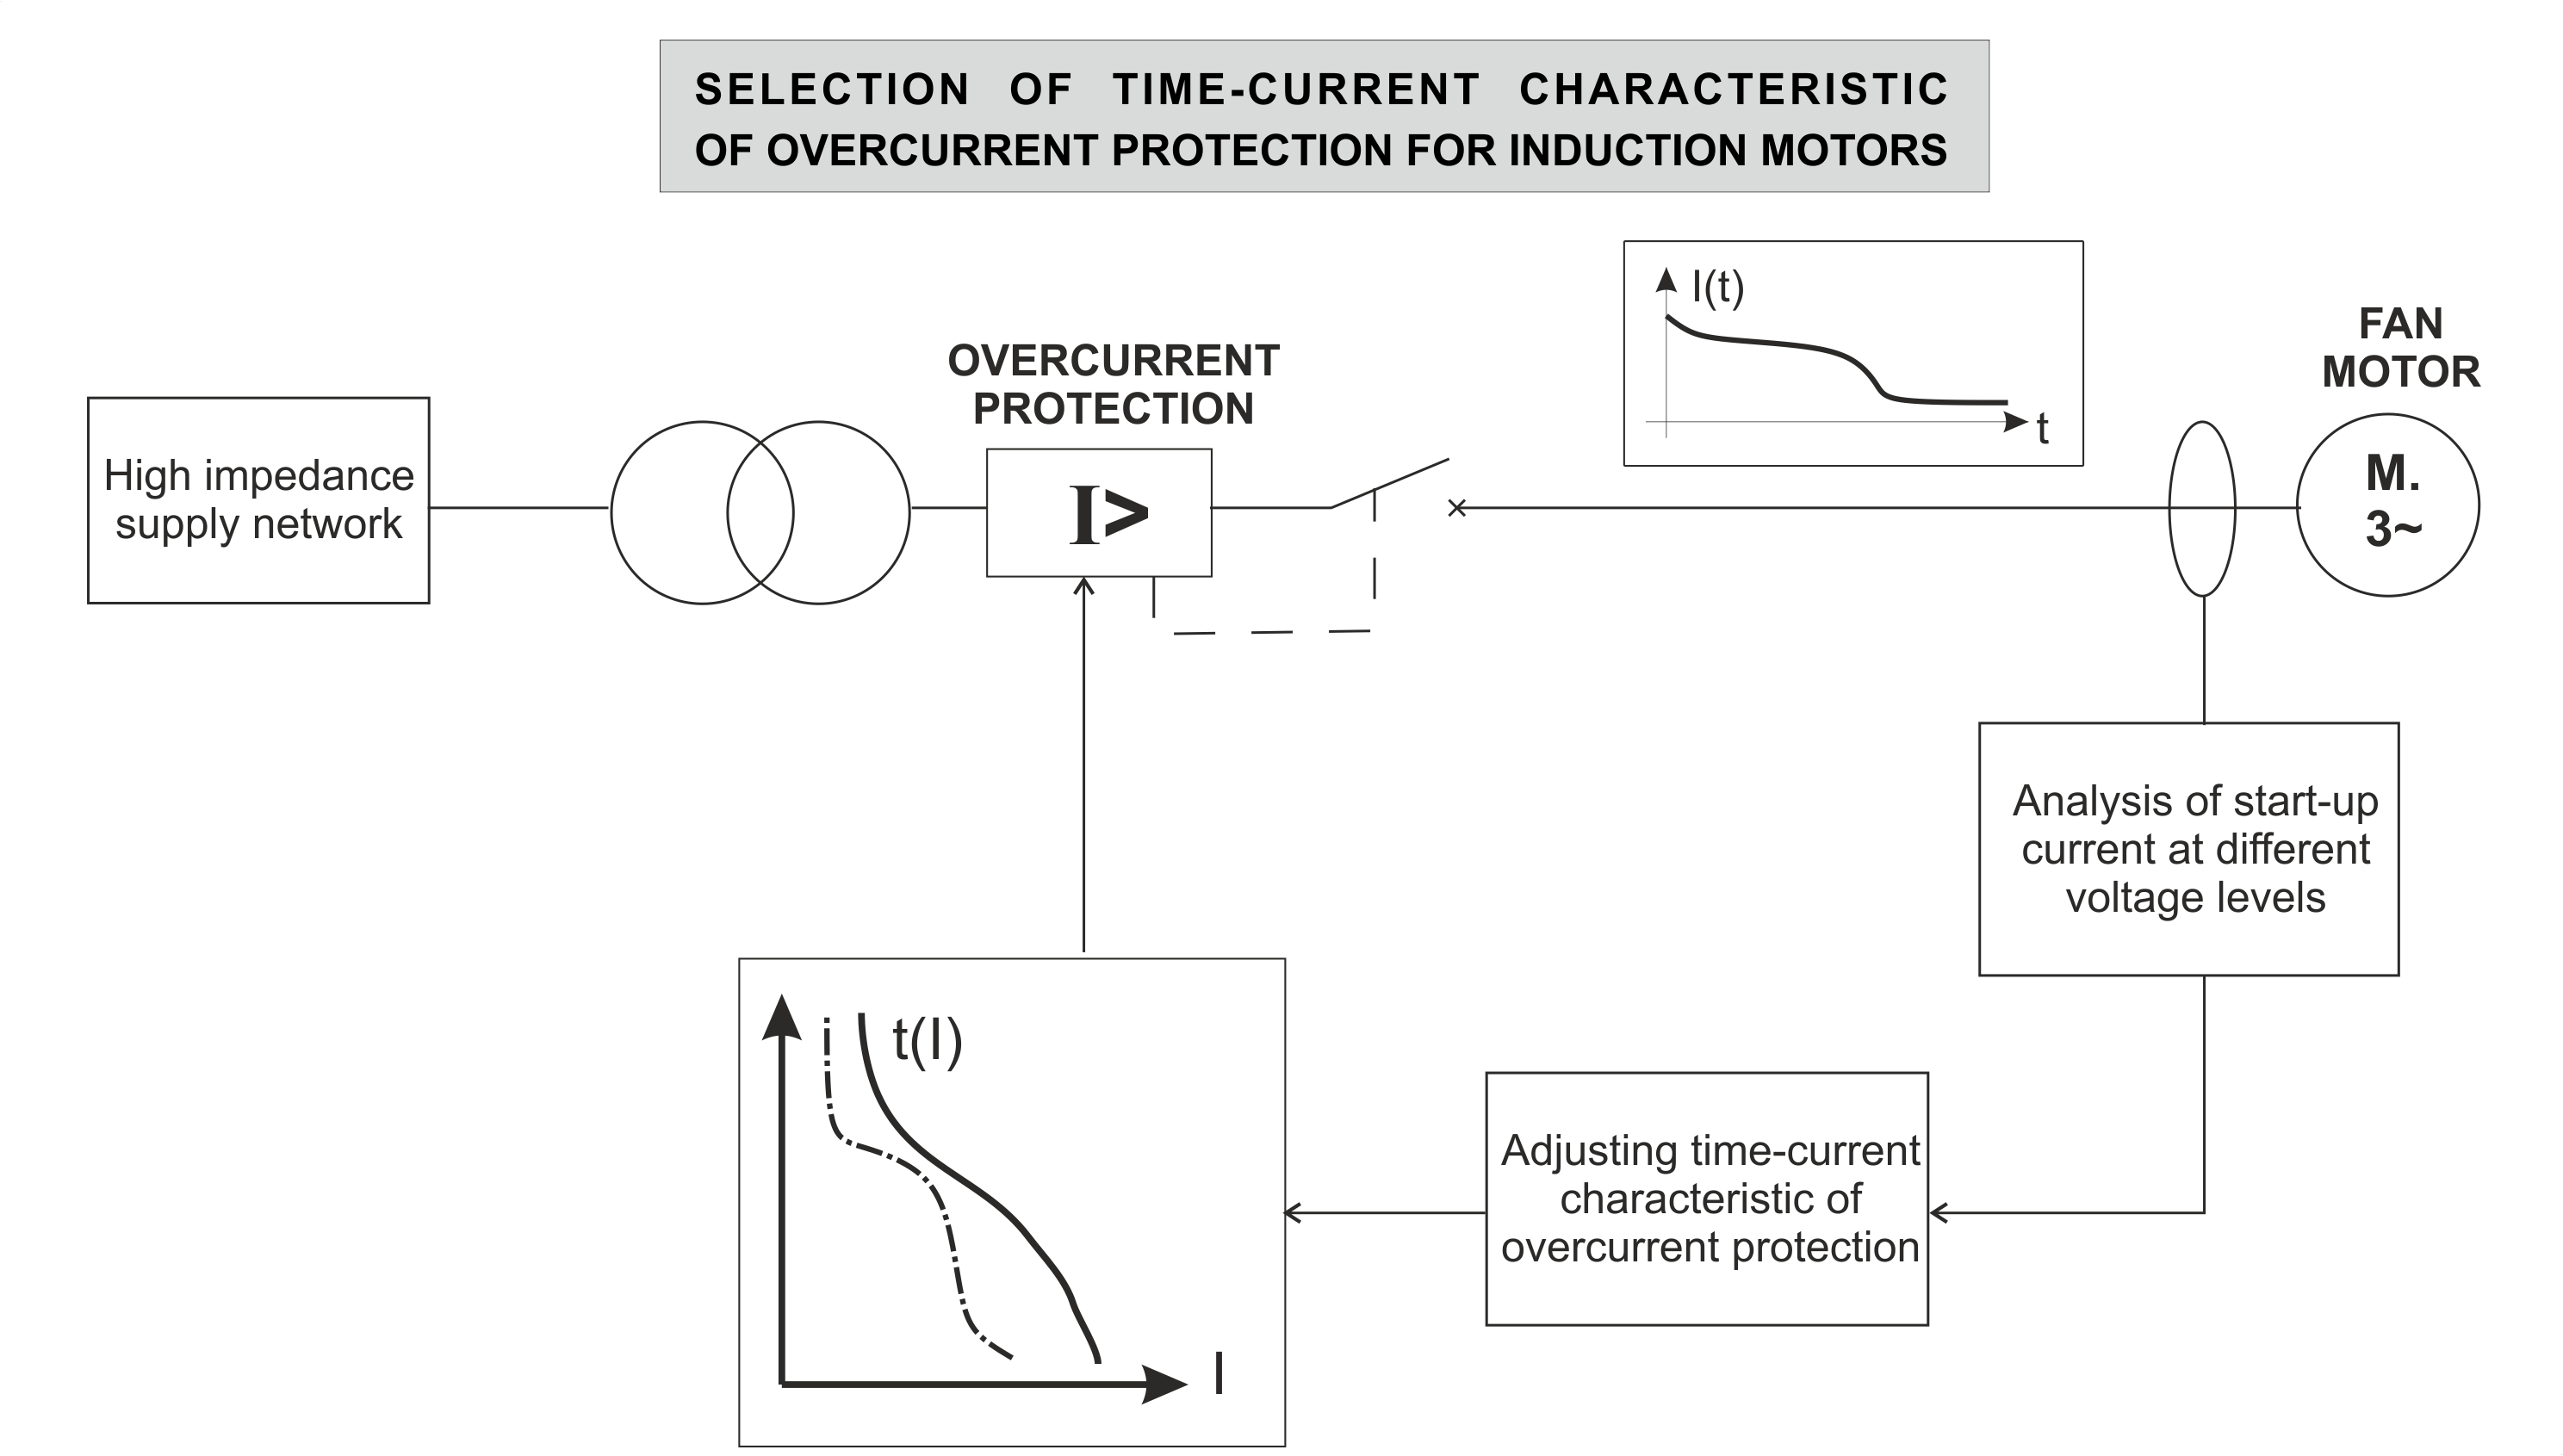 Energies Free Full Text Optimal Selection Of Time Current Characteristic Of Overcurrent Protection For Induction Motors In Drives Of Mining Machines With Prolonged Starting Time Html